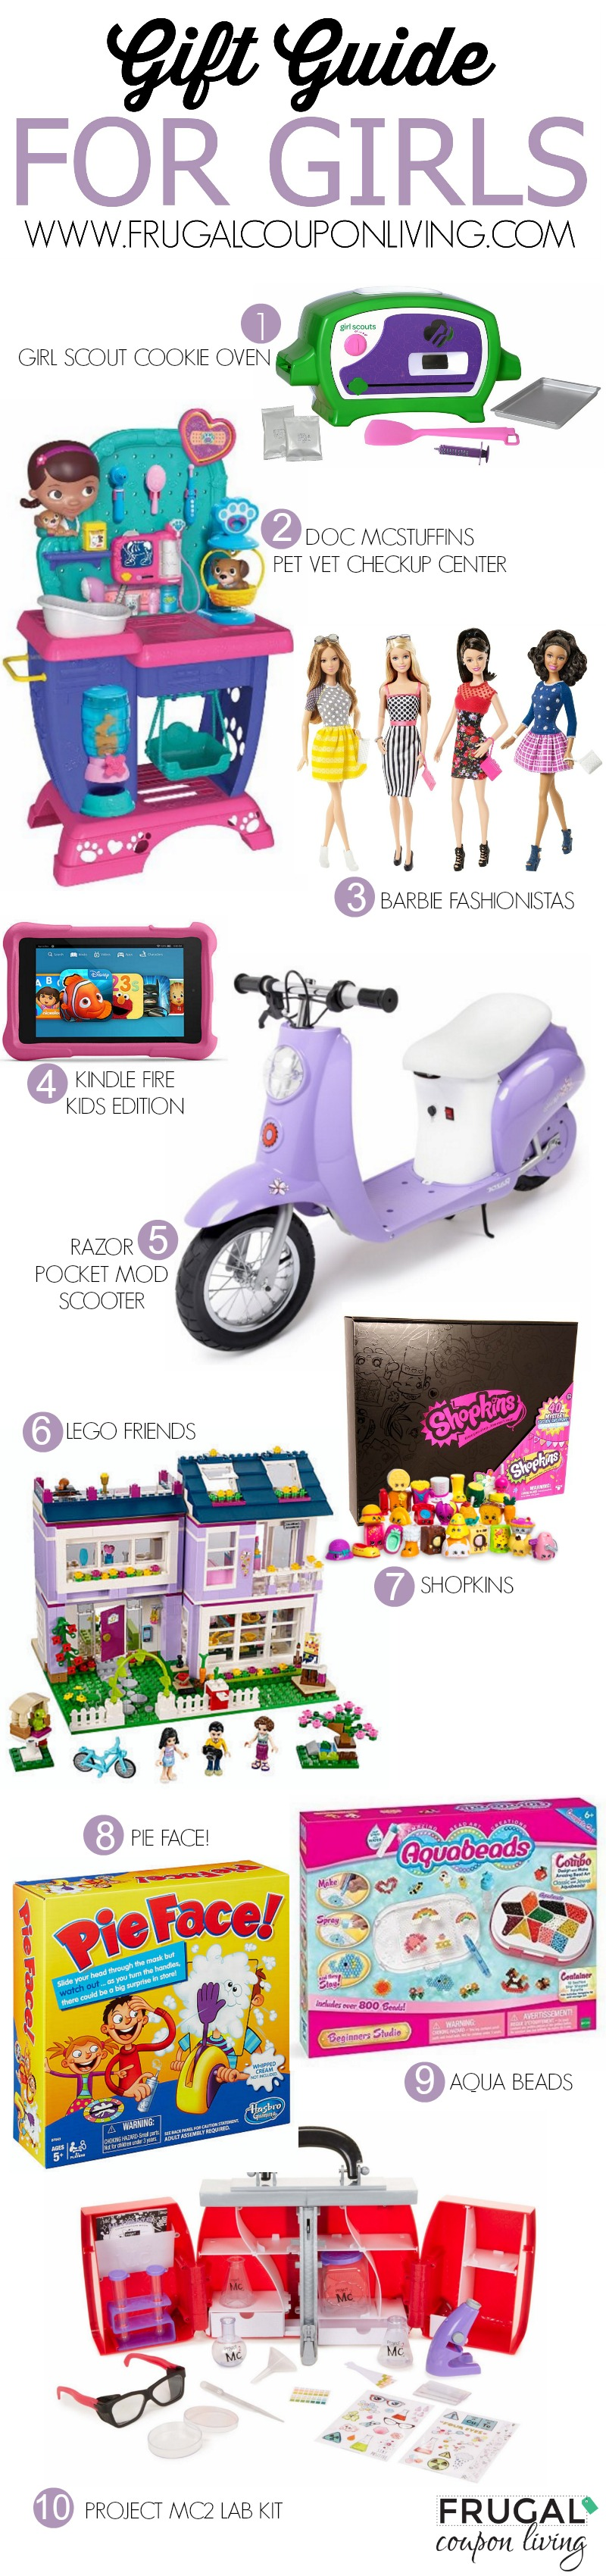 gift-guide-for-girls-final-frugal-coupon-living